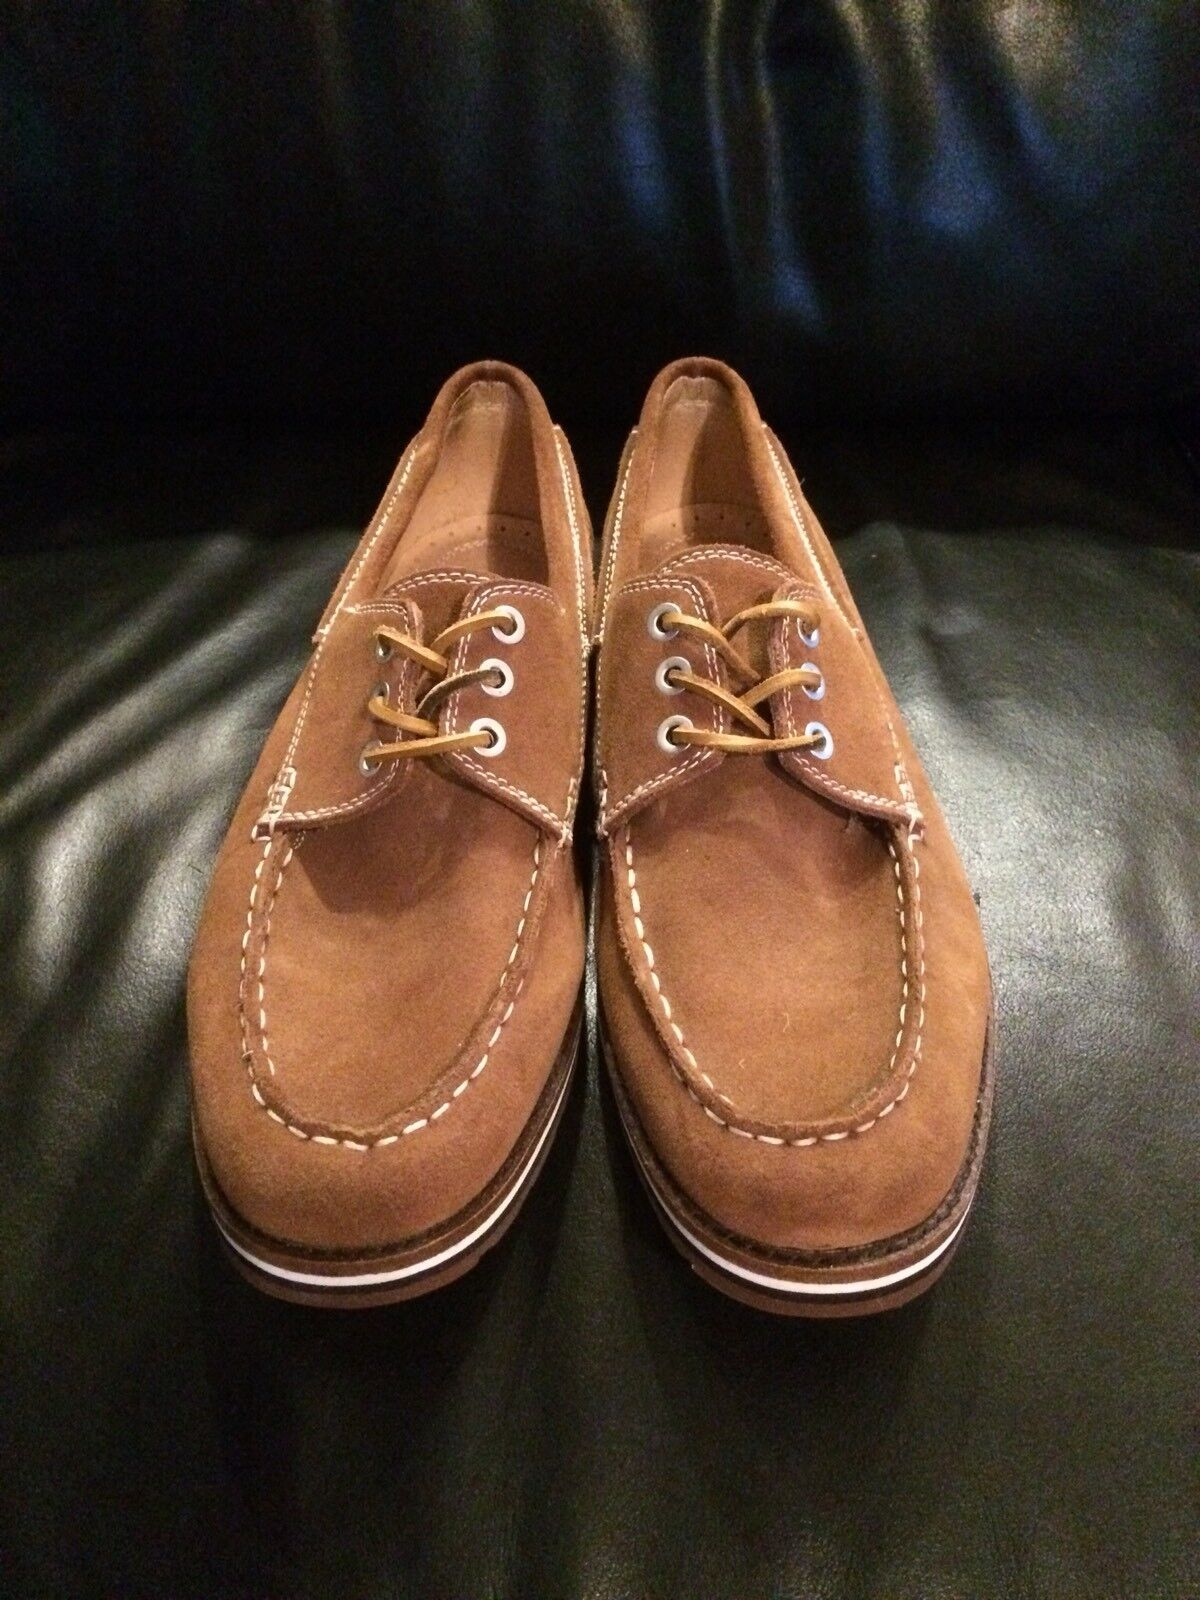 ☀️ Men's J.D. Fisk Leather Lace Up Oxfords Loafers Boat shoes Size 12 US